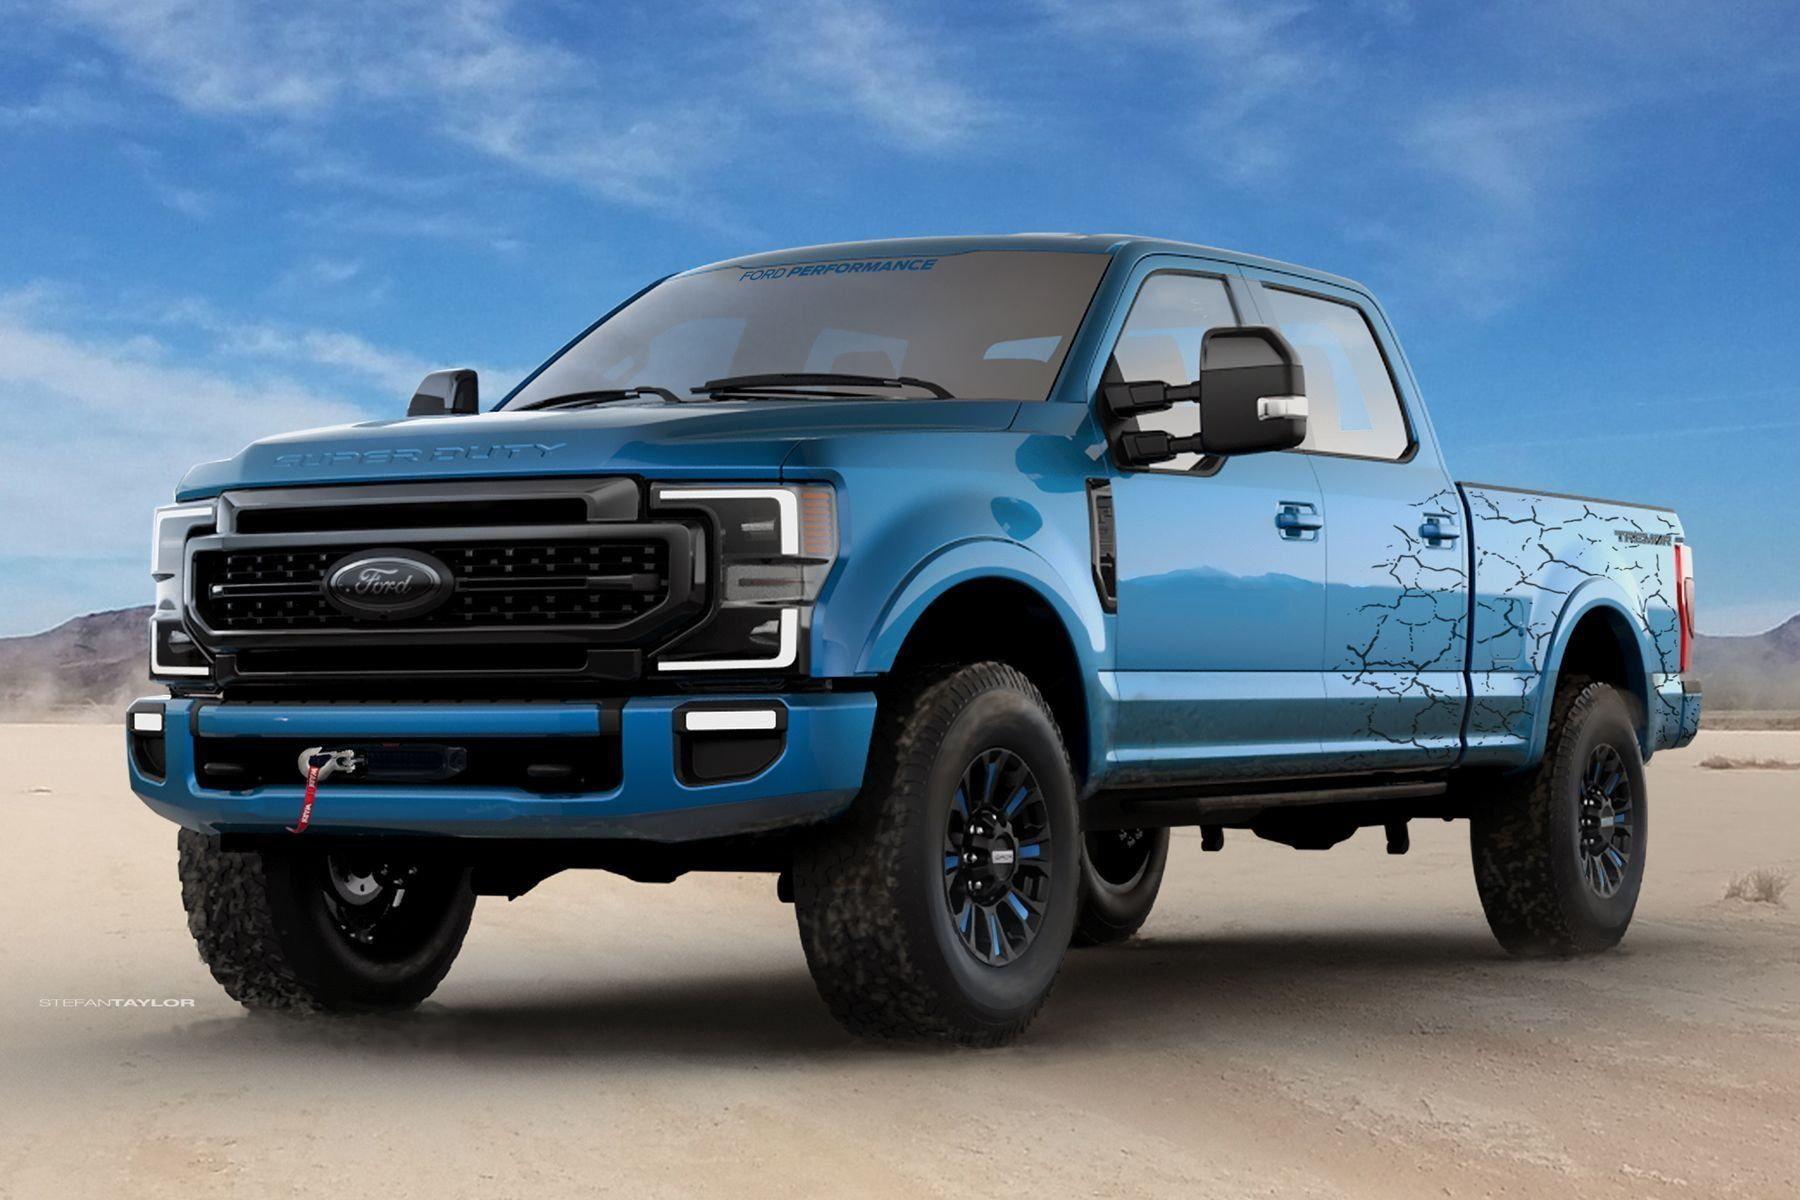 2021 Ford F250 Picture In 2020 Super Duty Trucks Ford Super